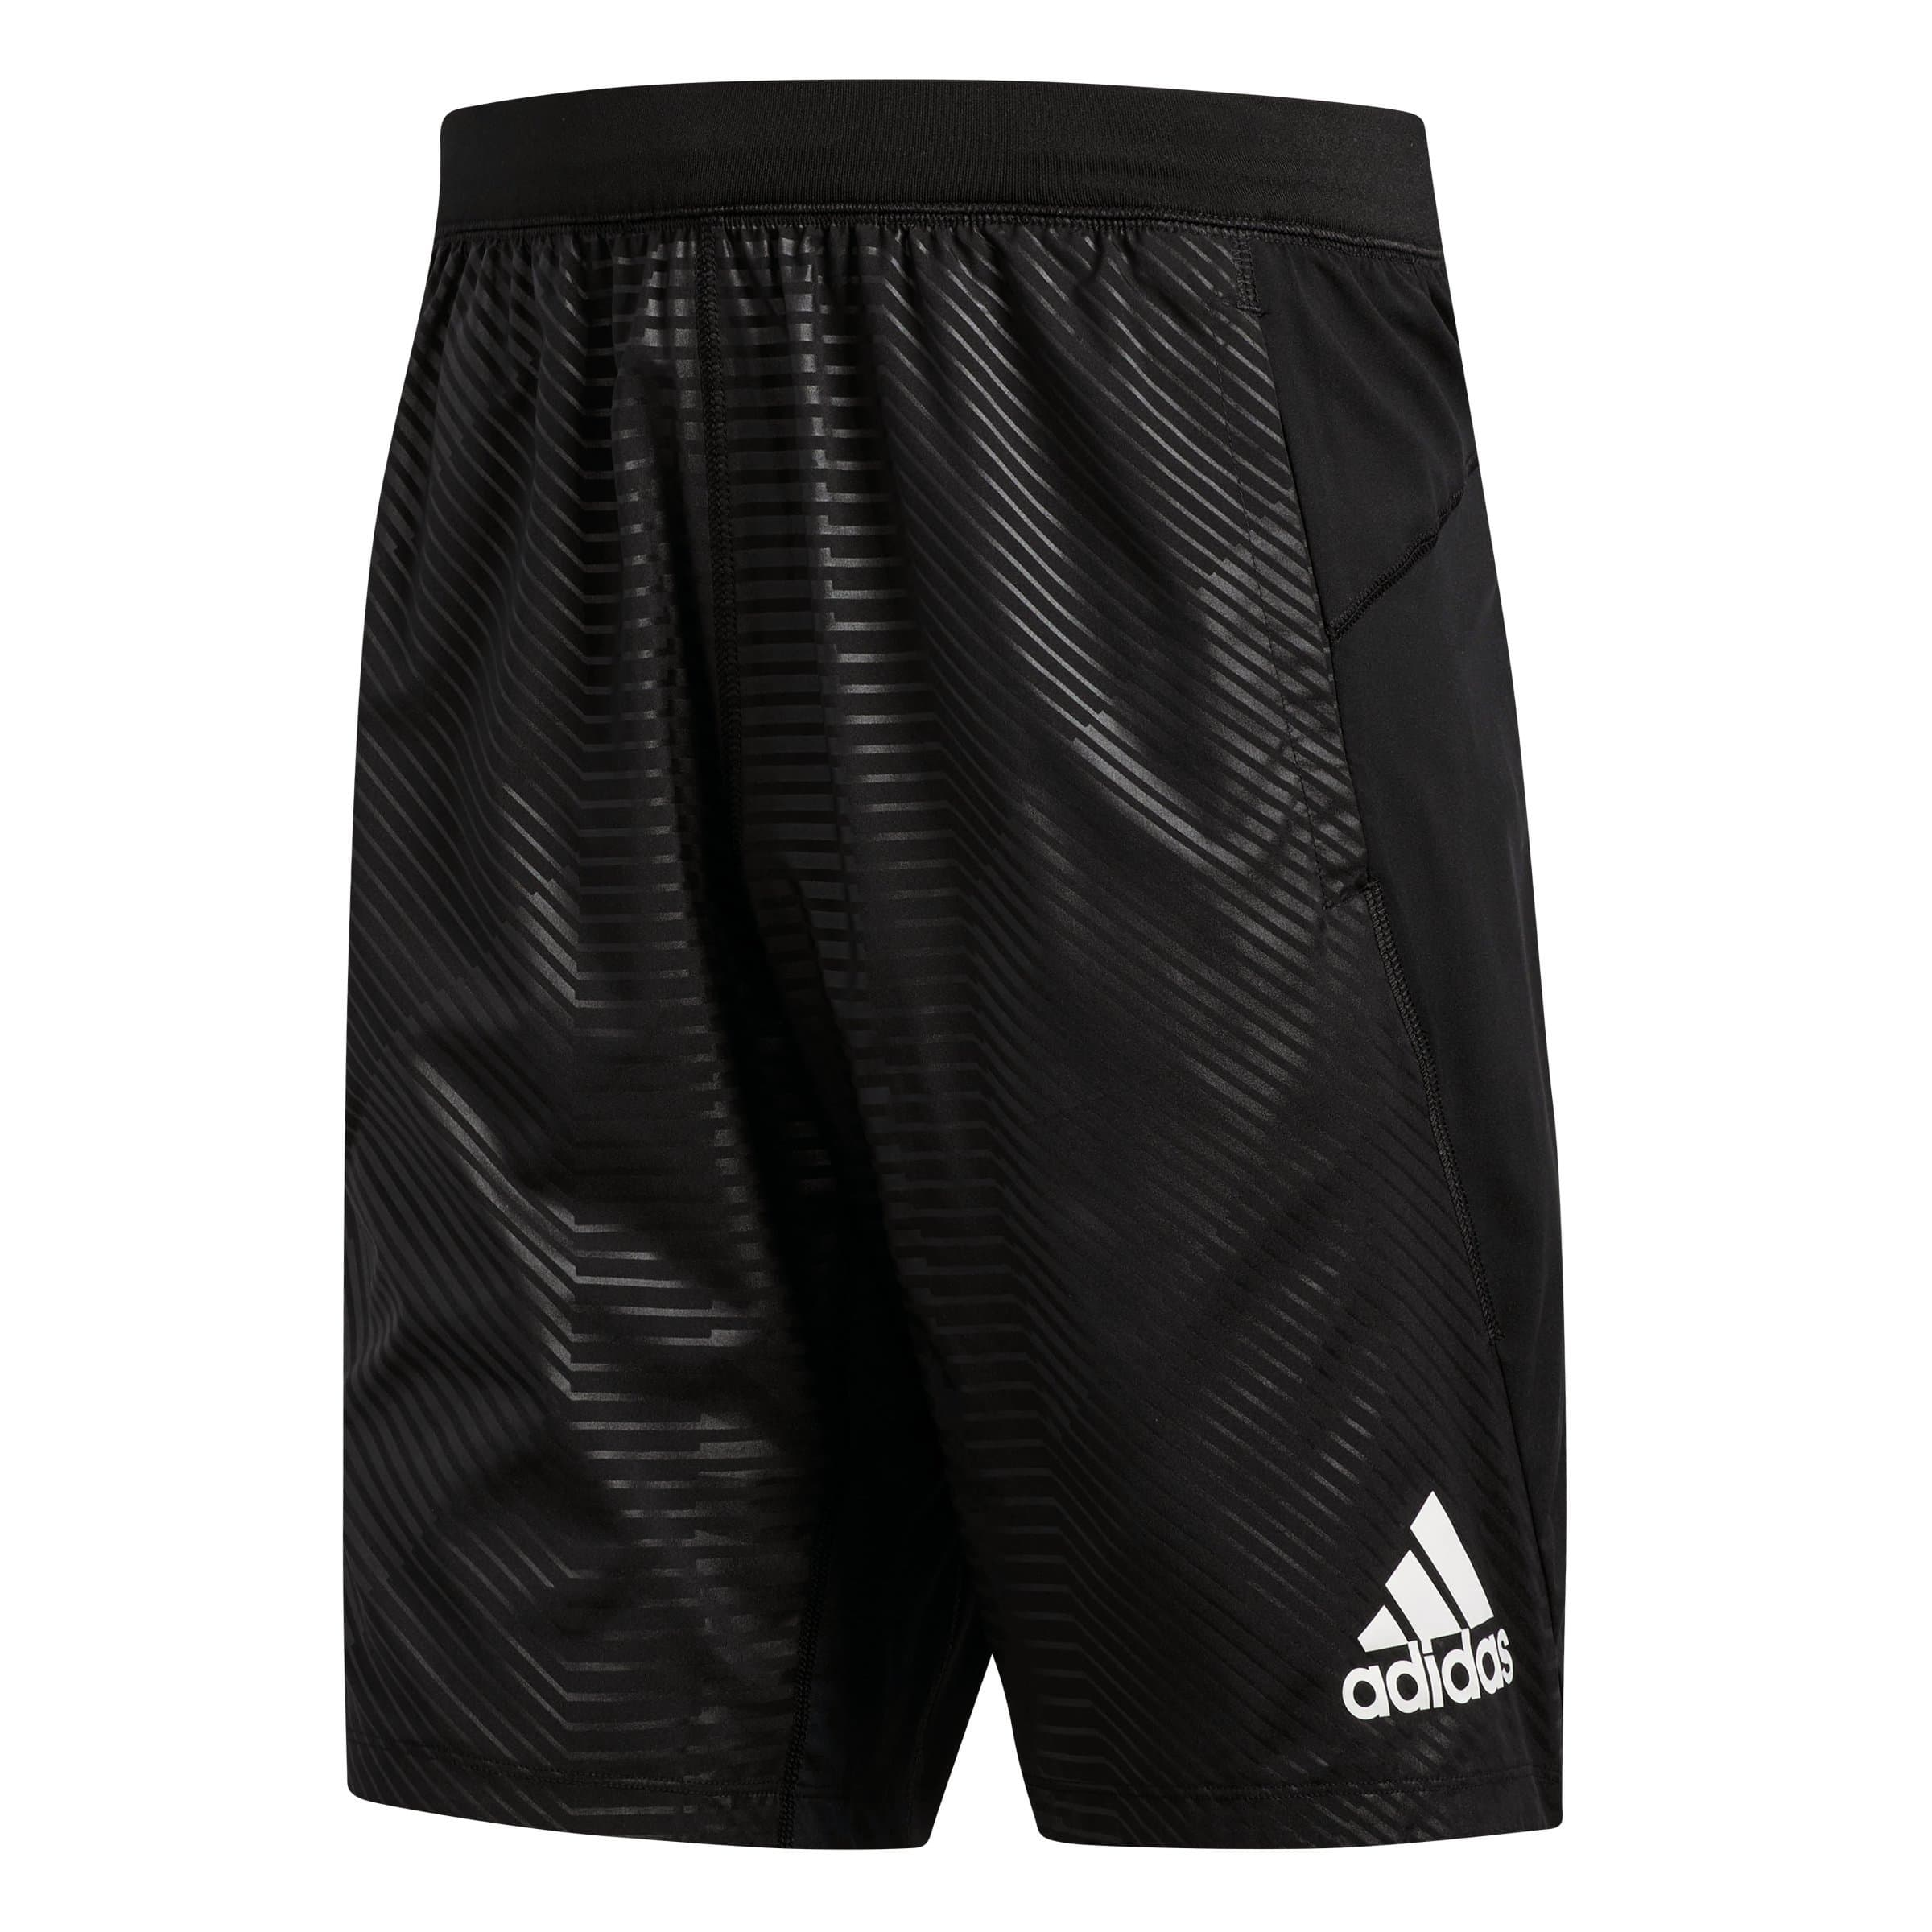 Adidas 4KRFT Graphic Woven 10inch Shorts Short pour homme